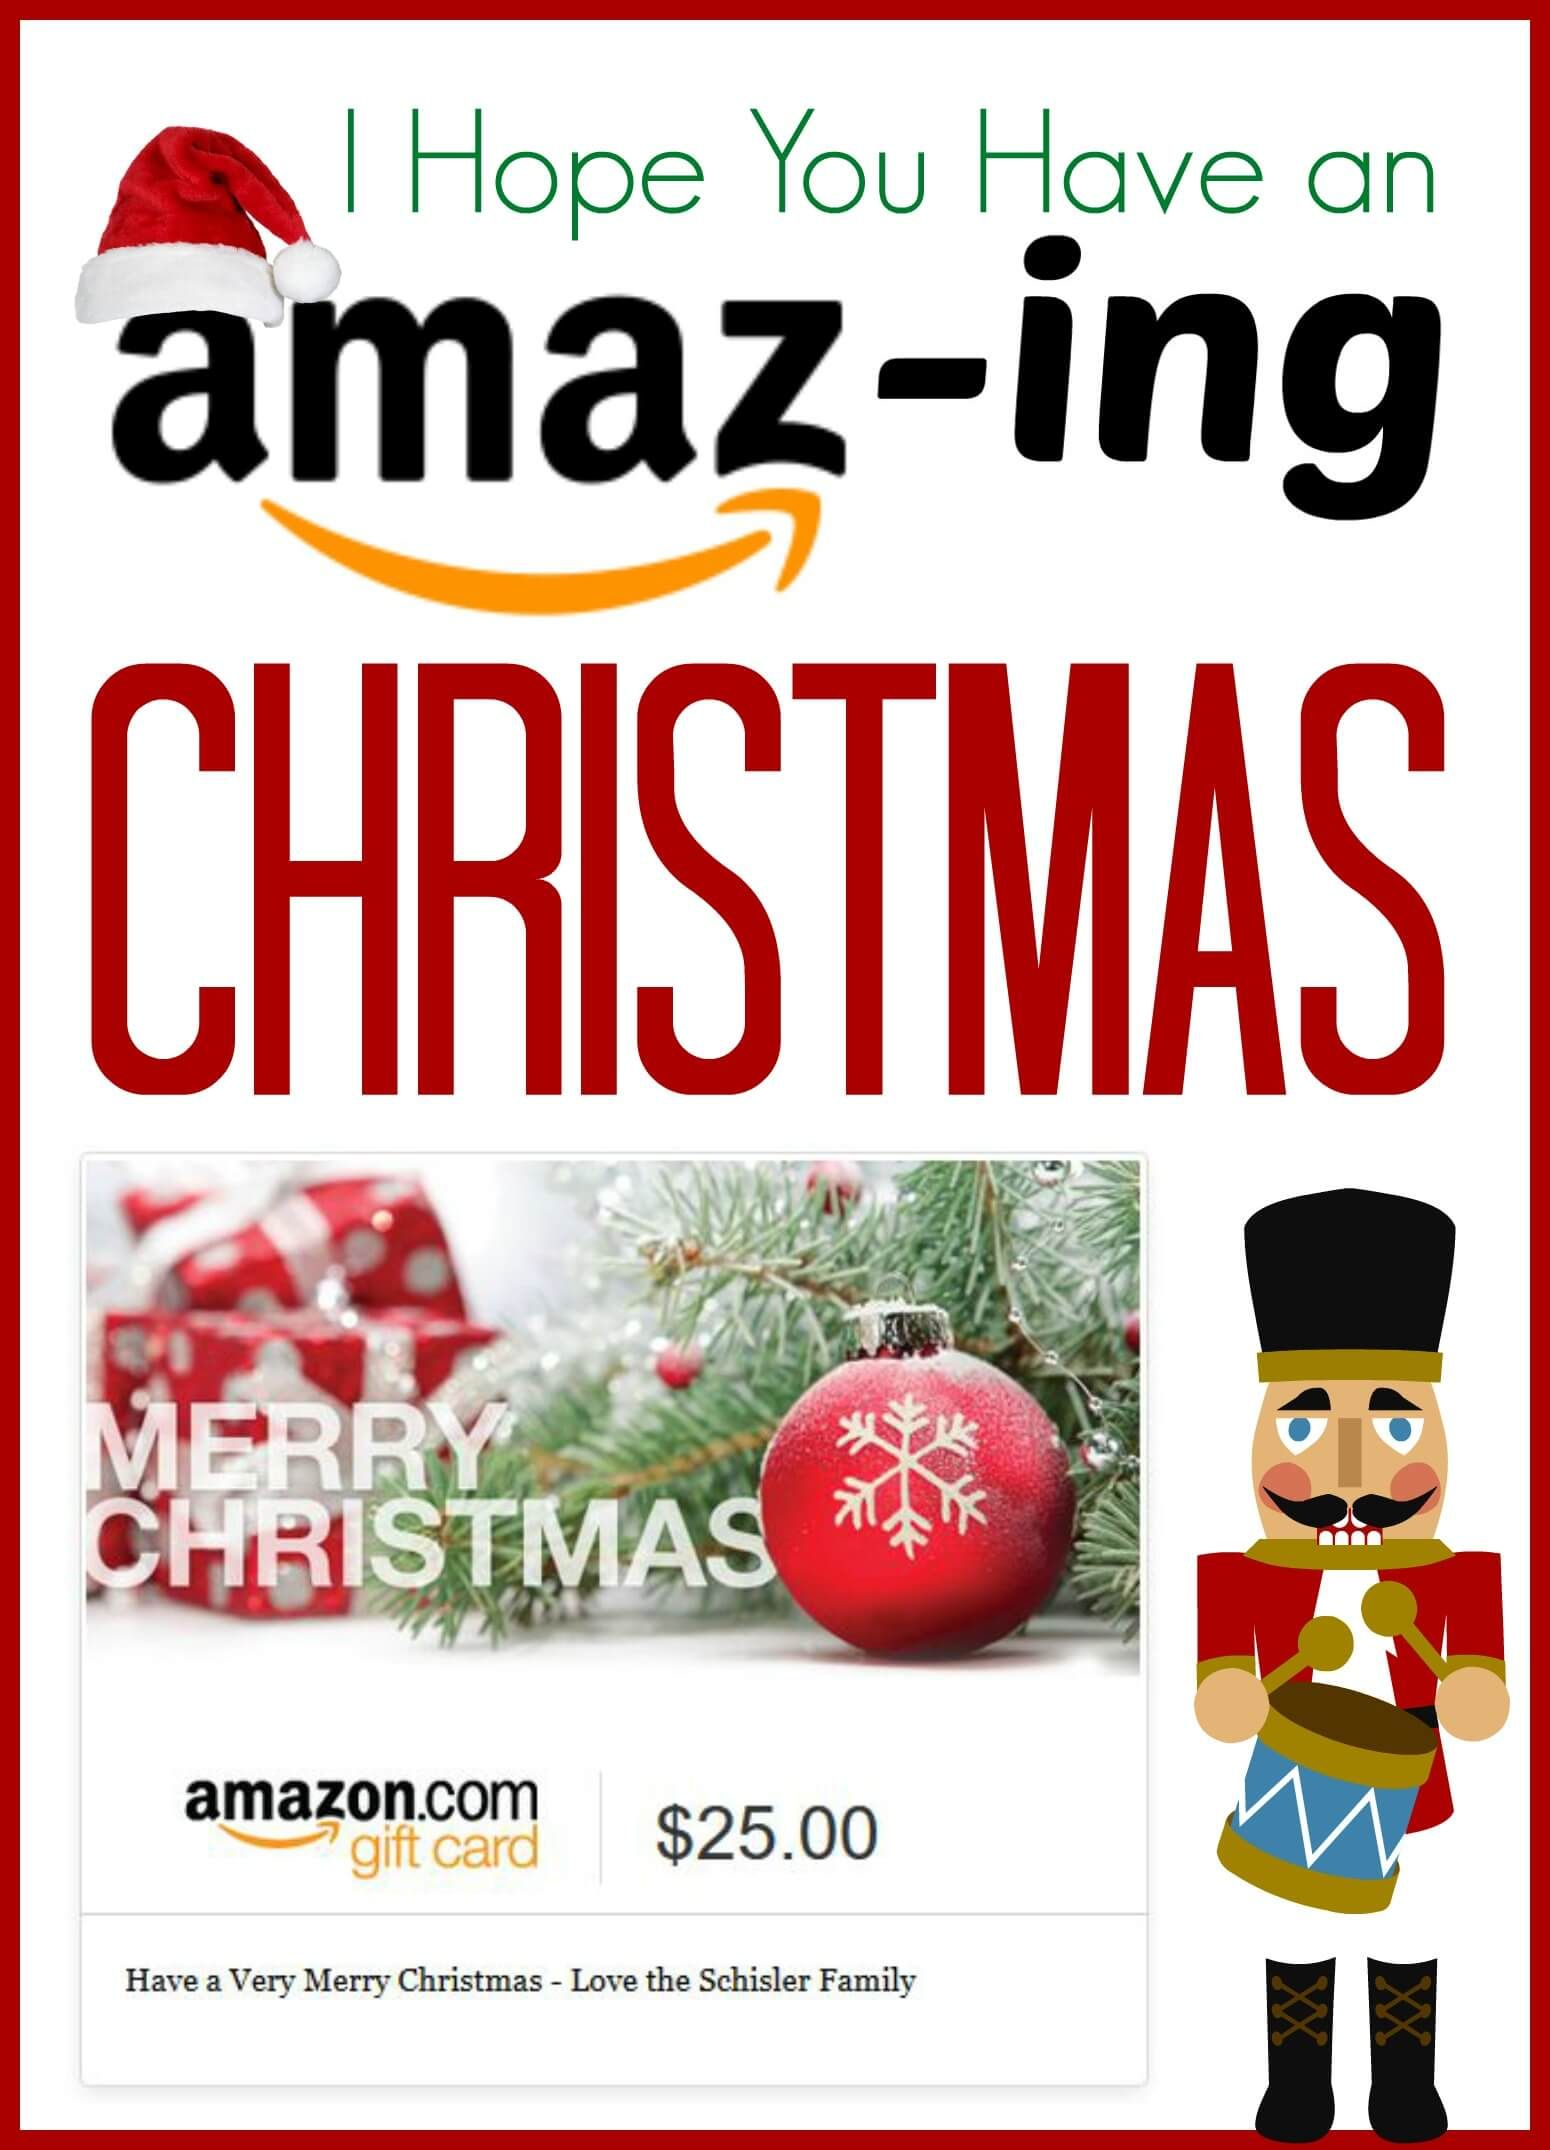 Amazing Christmas Ideas For Amazon Last Minute Gift Ideas For Anyone On Your List Amazon Gift Card Free Diy Gift Card Amazon Gift Cards